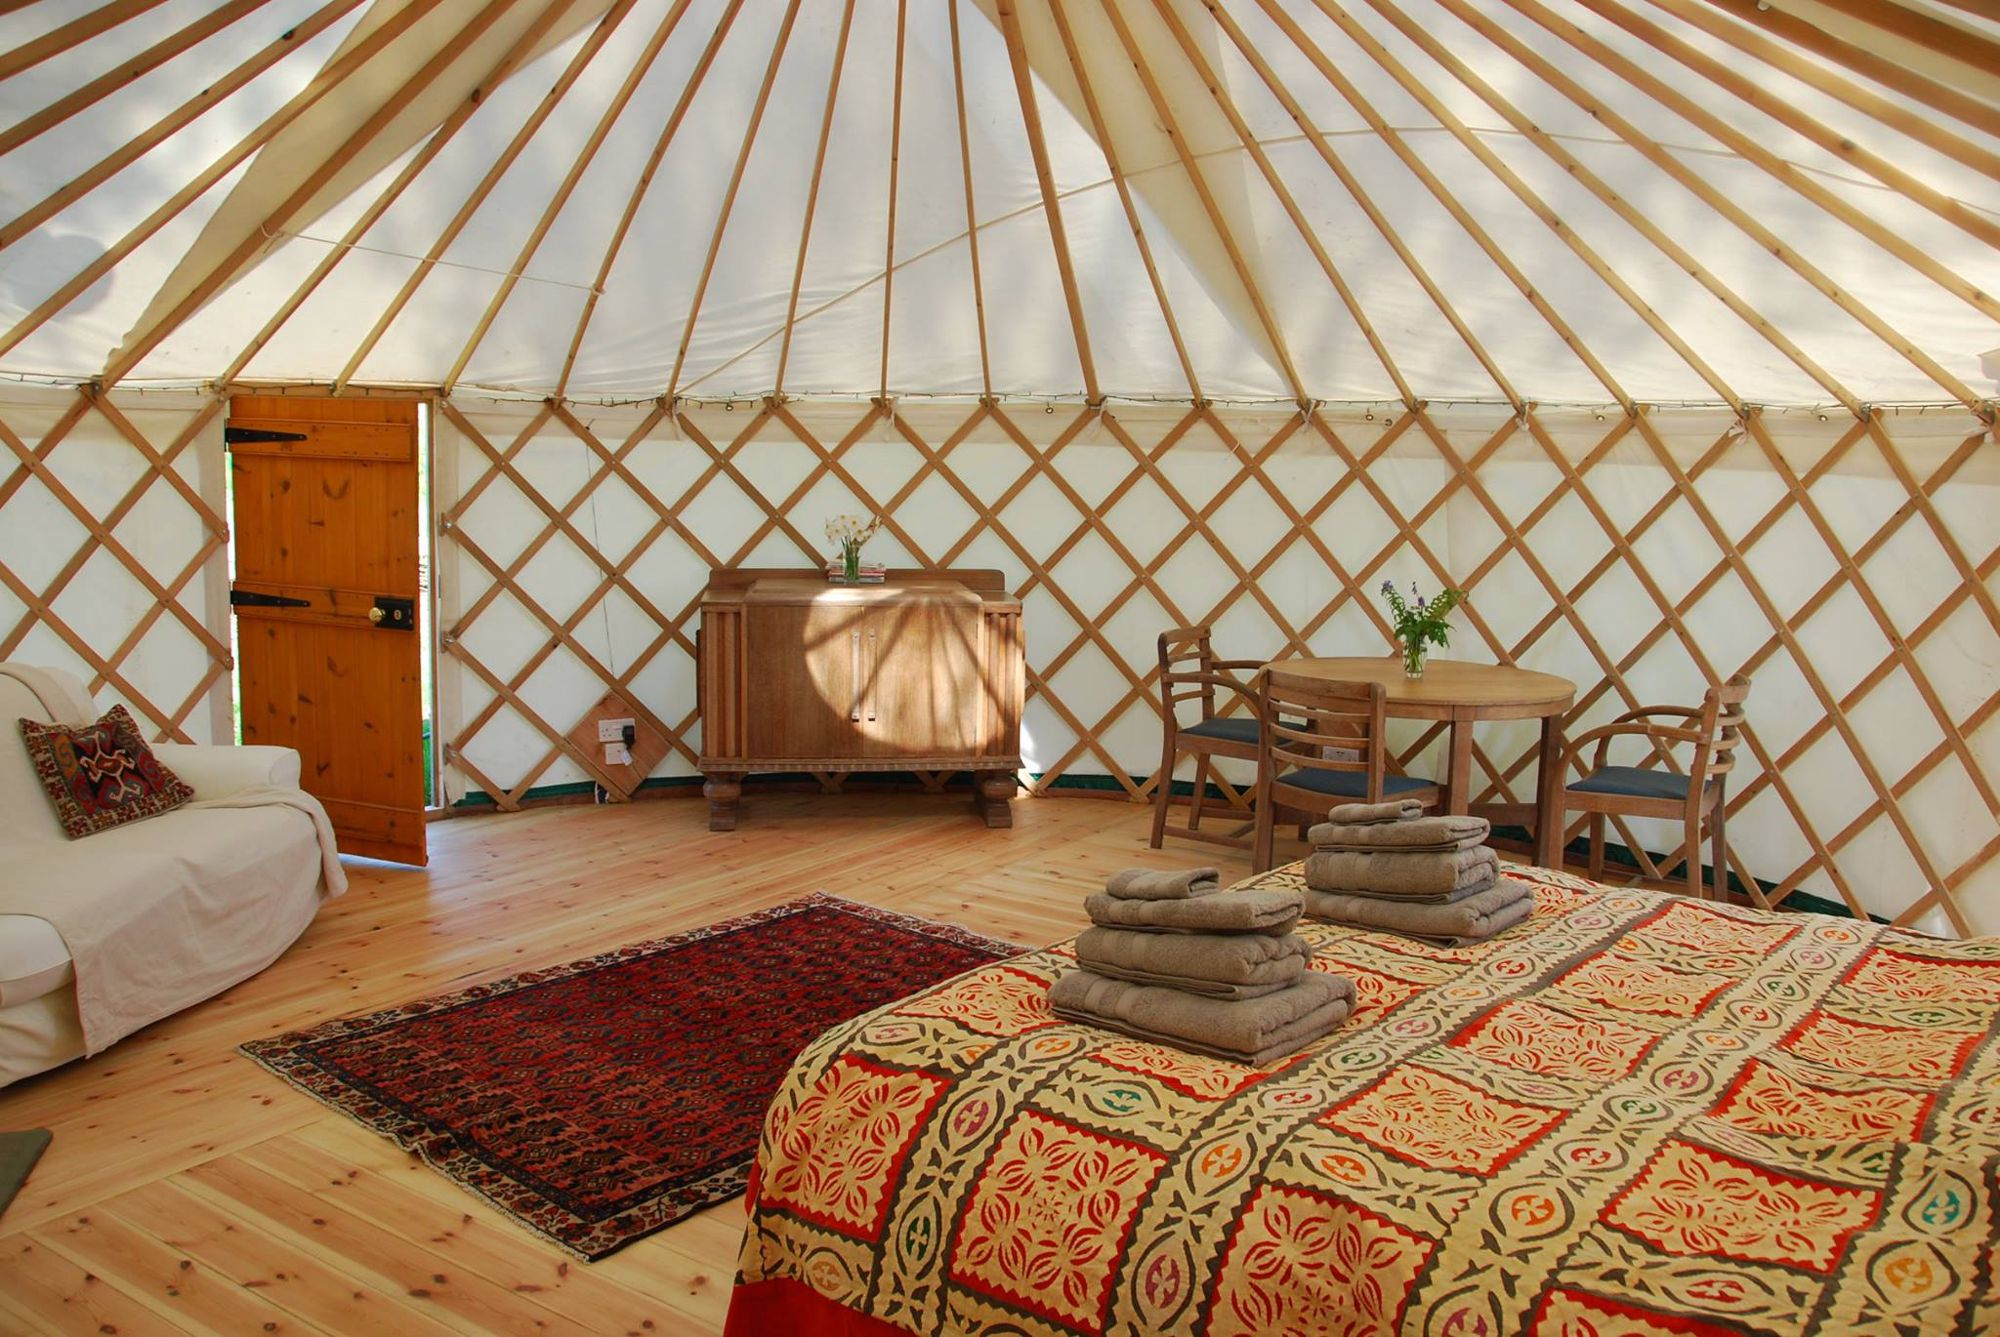 Walnut Farm Glamping